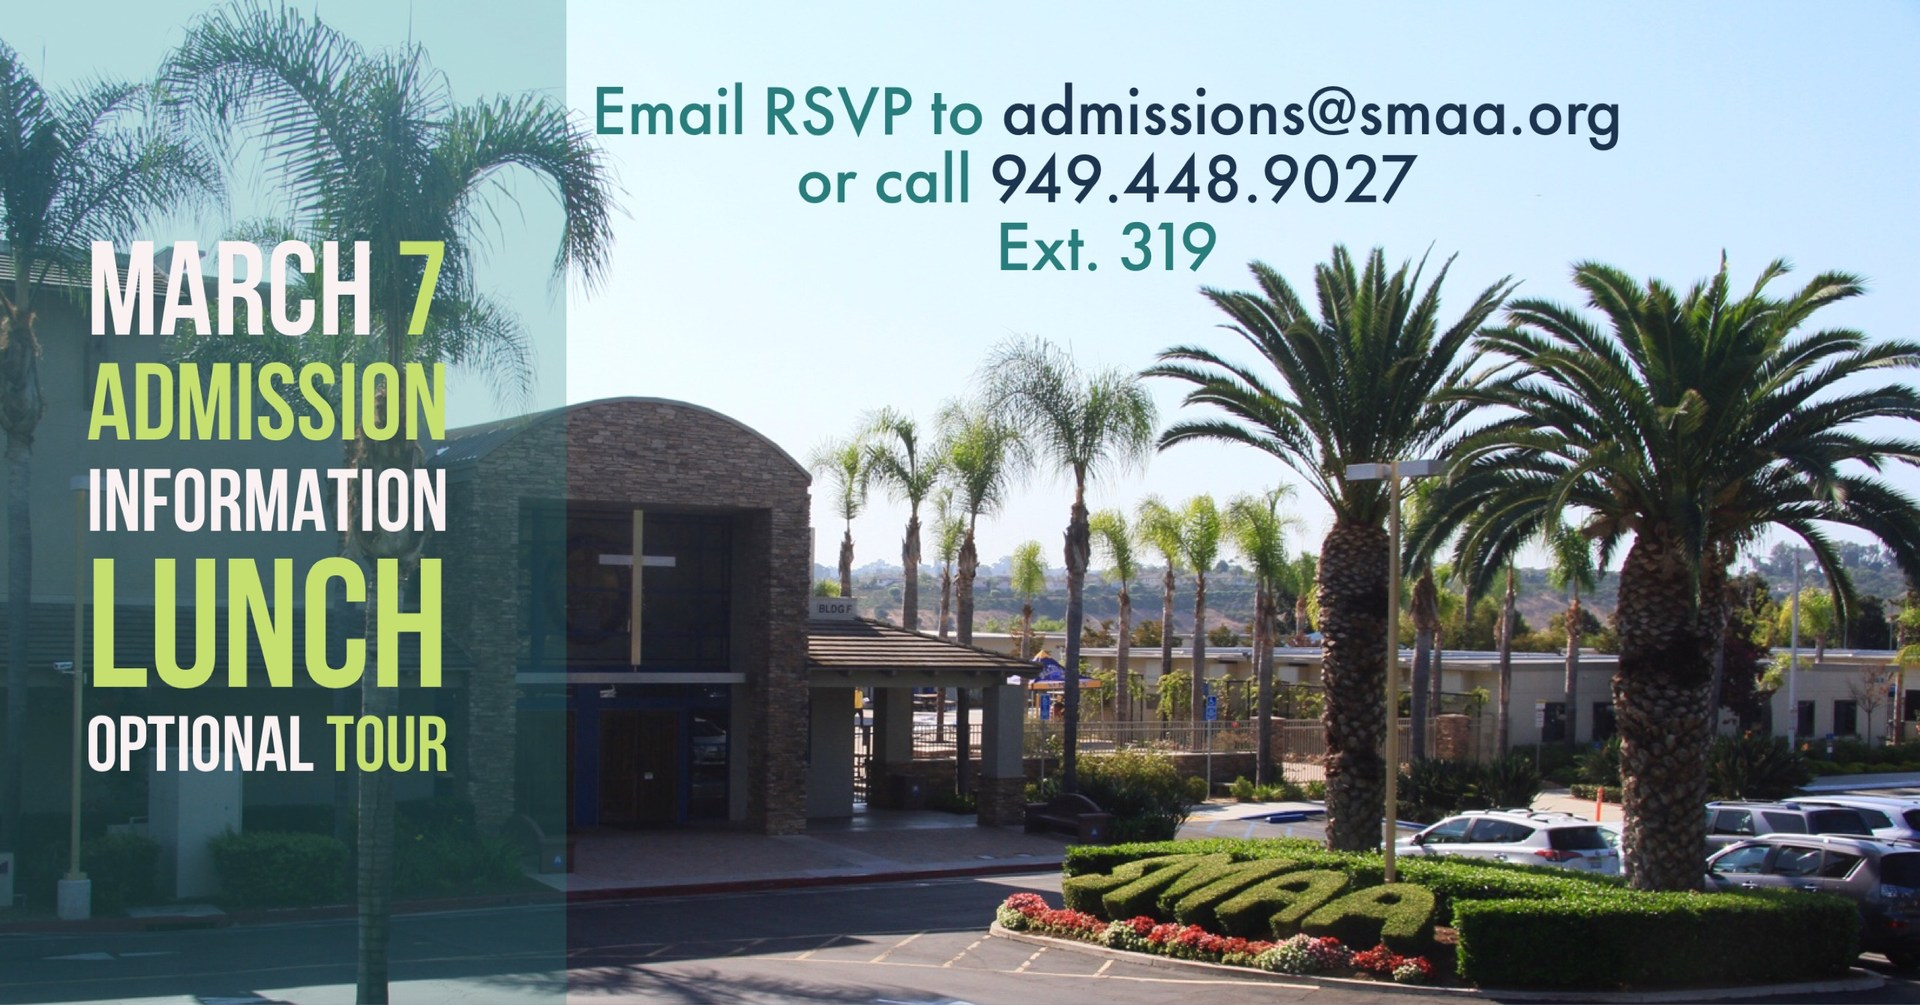 Admission Information Lunch with photo of school and rsvp